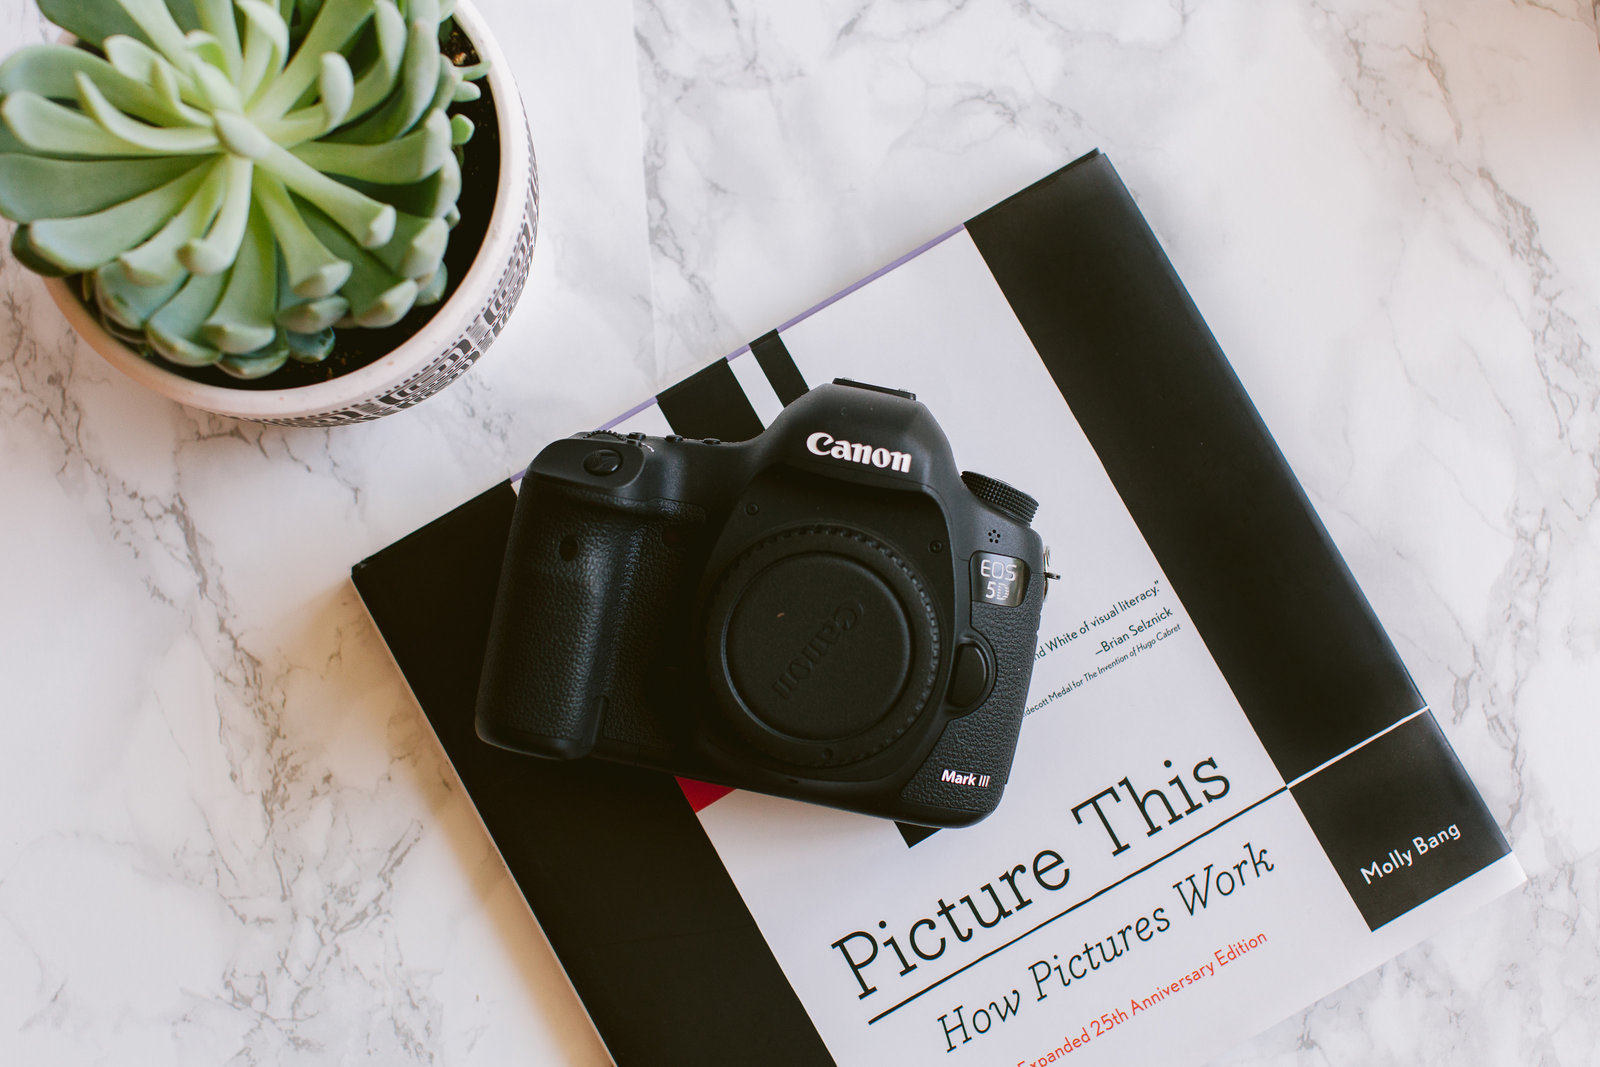 Canon camera and Picture This book